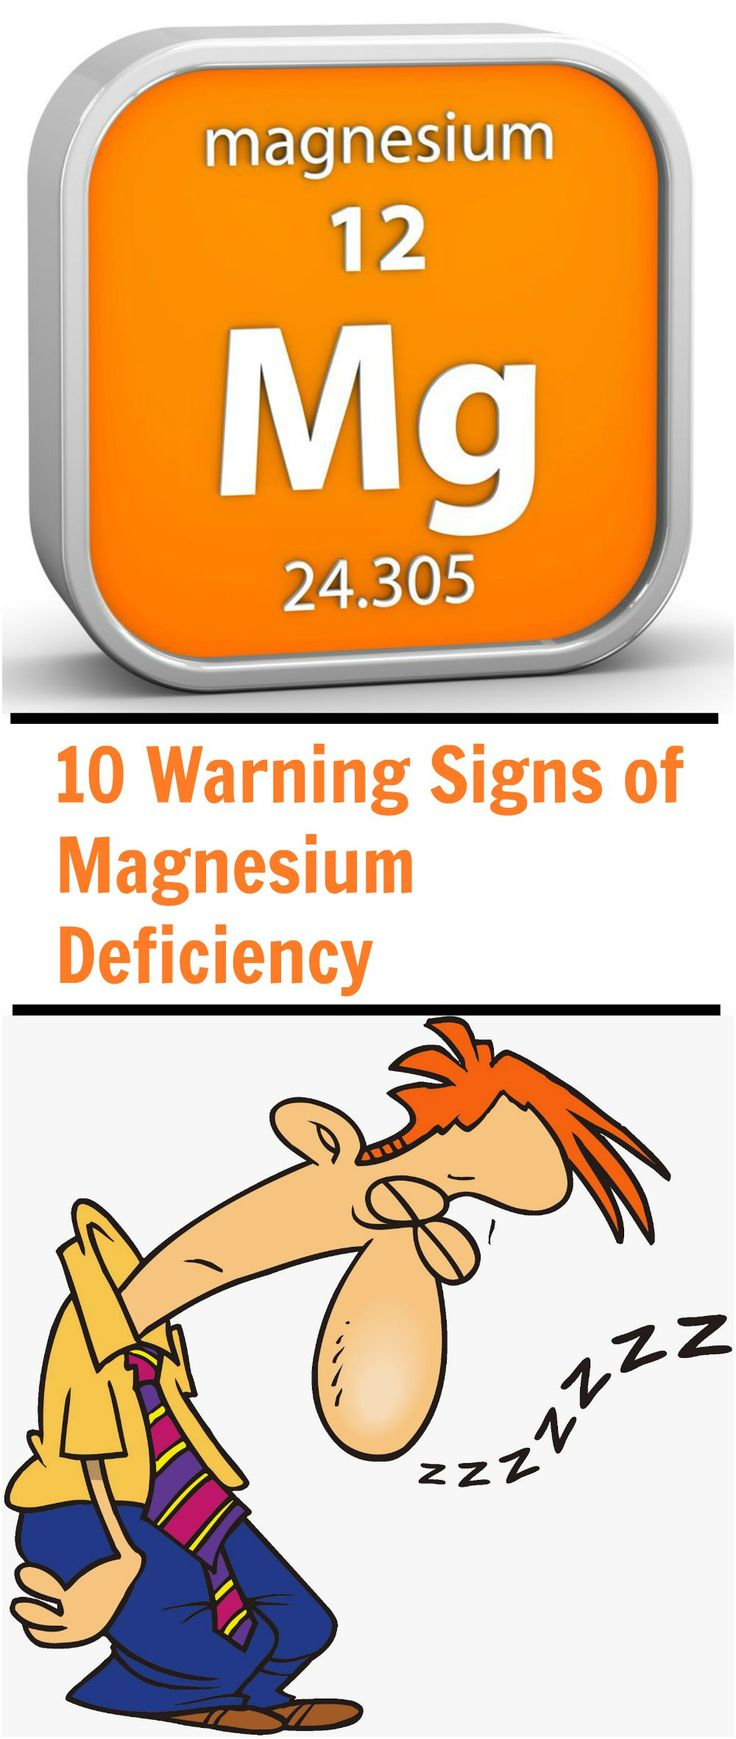 Magnesium deficiency is known in research circles as the silent epidemic of our times. Many of the signs of low magnesium are not unique to magnesium deficiency, making it difficult to diagnose with 100% accuracy. Thus quite often low magnesium levels go completely unrecognized and untreated. Here are 10 Warning Signs of Magnesium Deficiency - Selfcarers